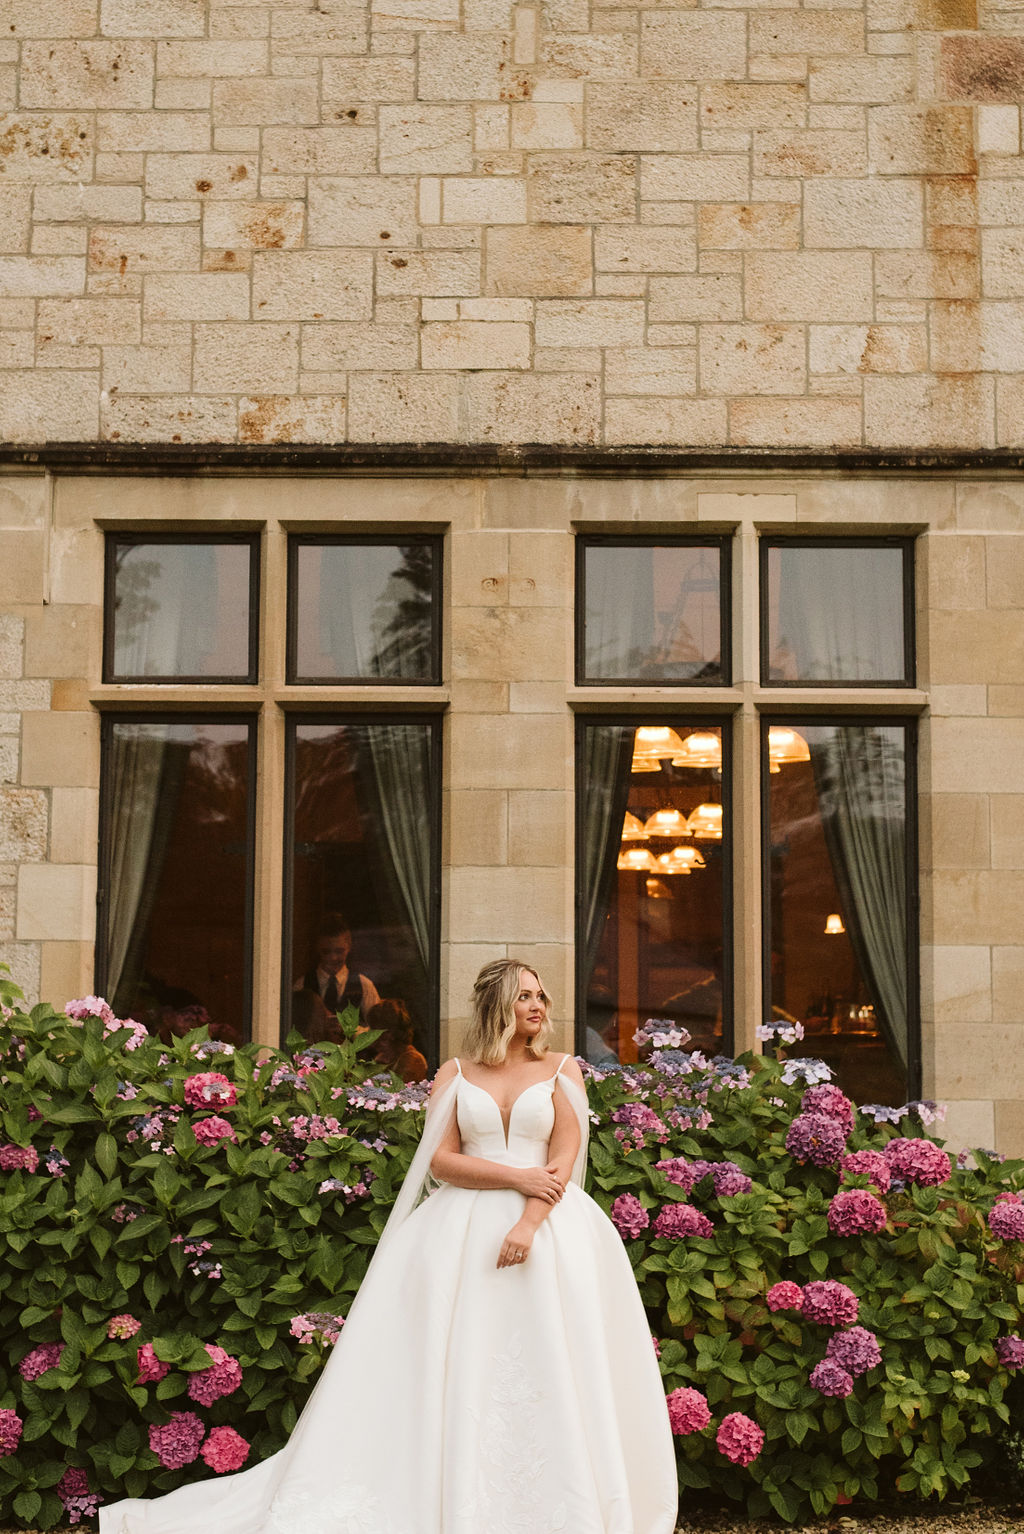 Bride wearing a mikado ballgown wedding dress with straps and tulle cape in front of hydrangeas at Lough Eske castle in Donegal, Ireland.